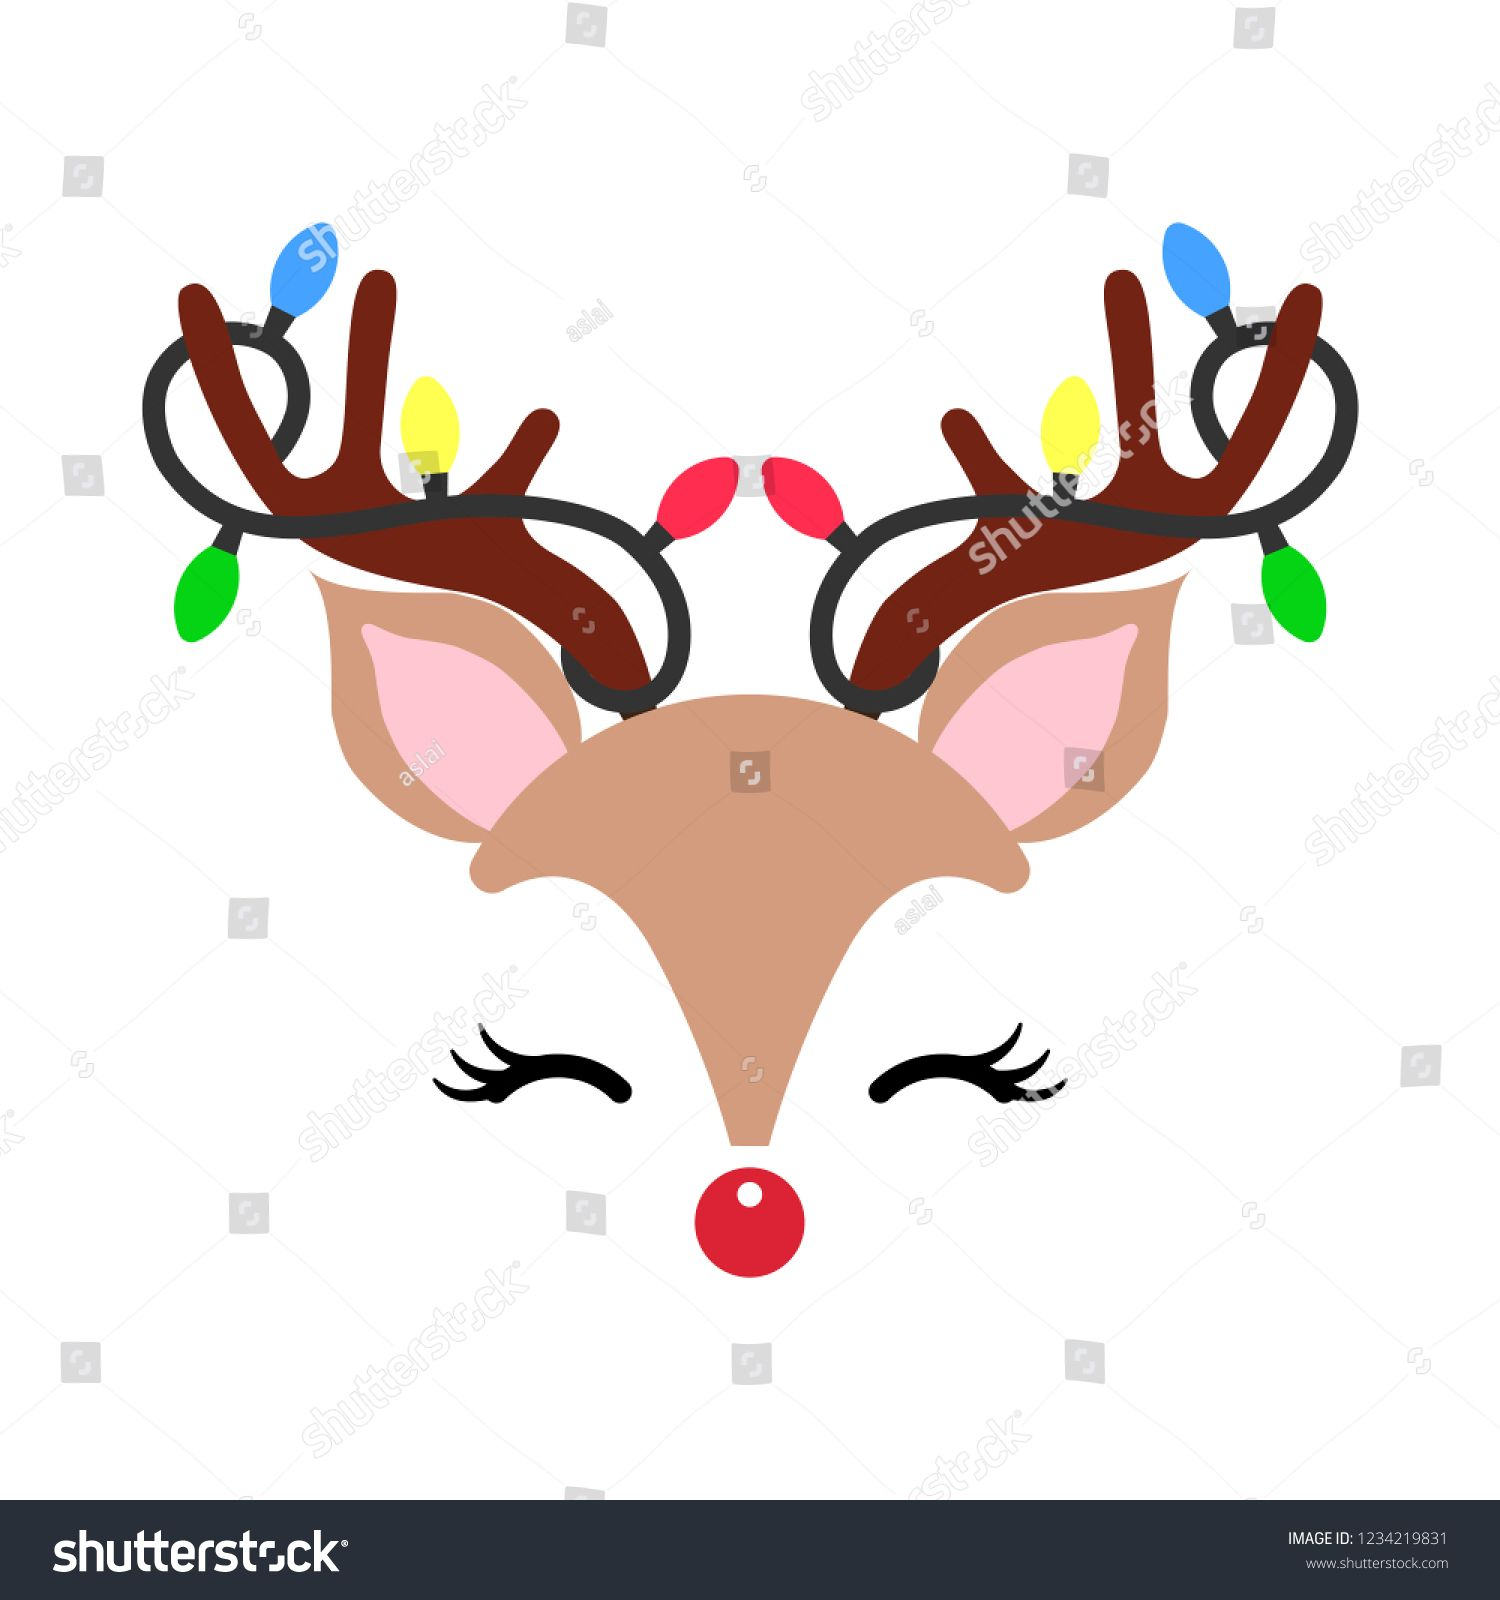 Cute Christmas red nose reindeer face vector. Funny